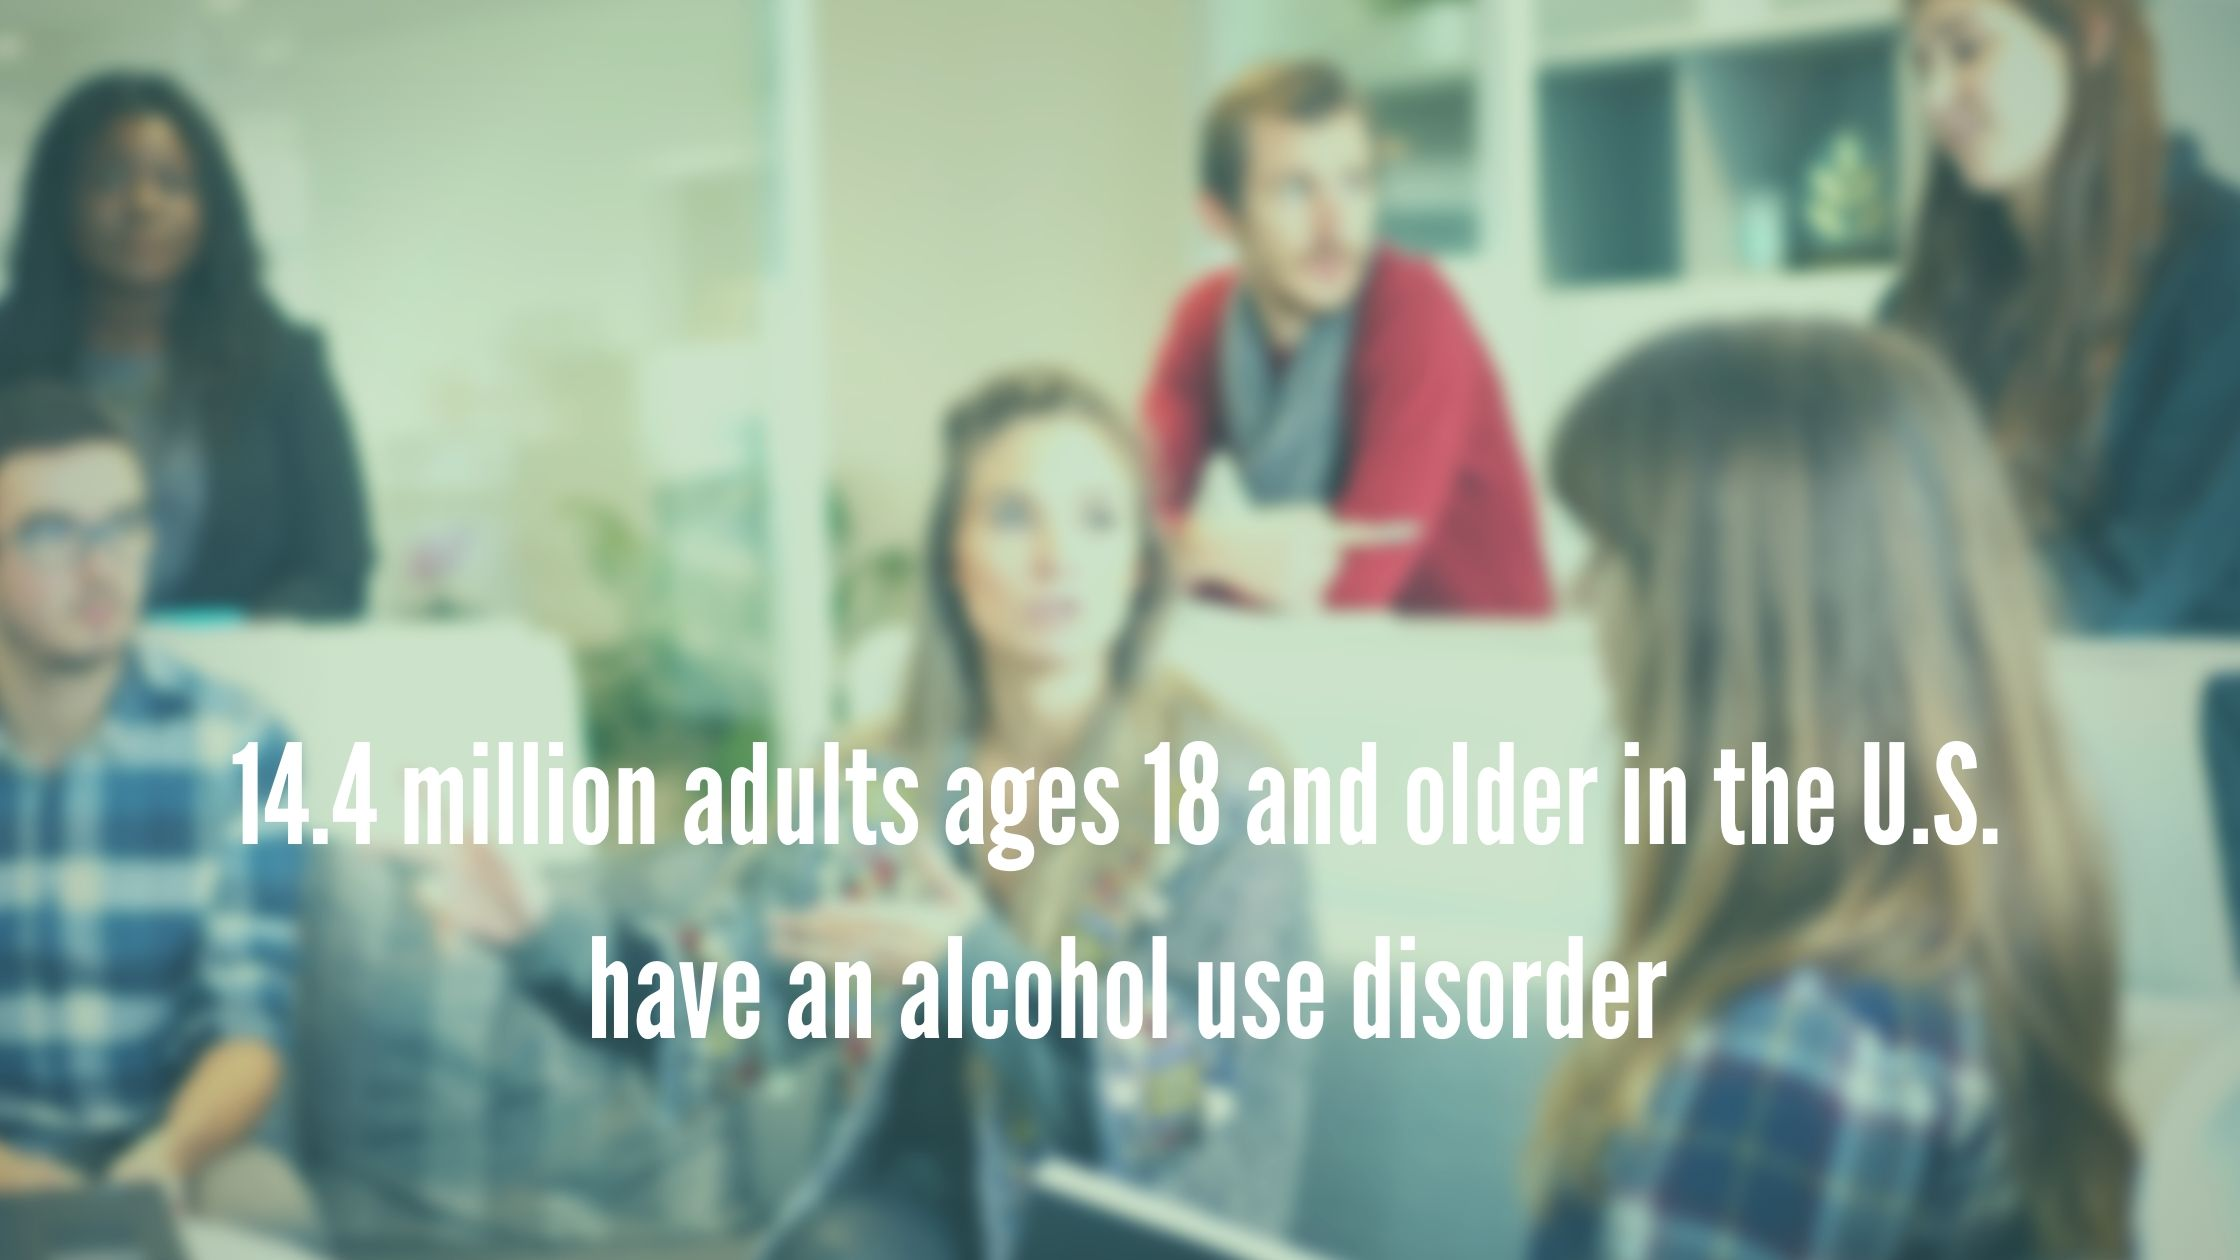 alcoholism, alcohol use disorders and avoiding the long-term effects of alcohol